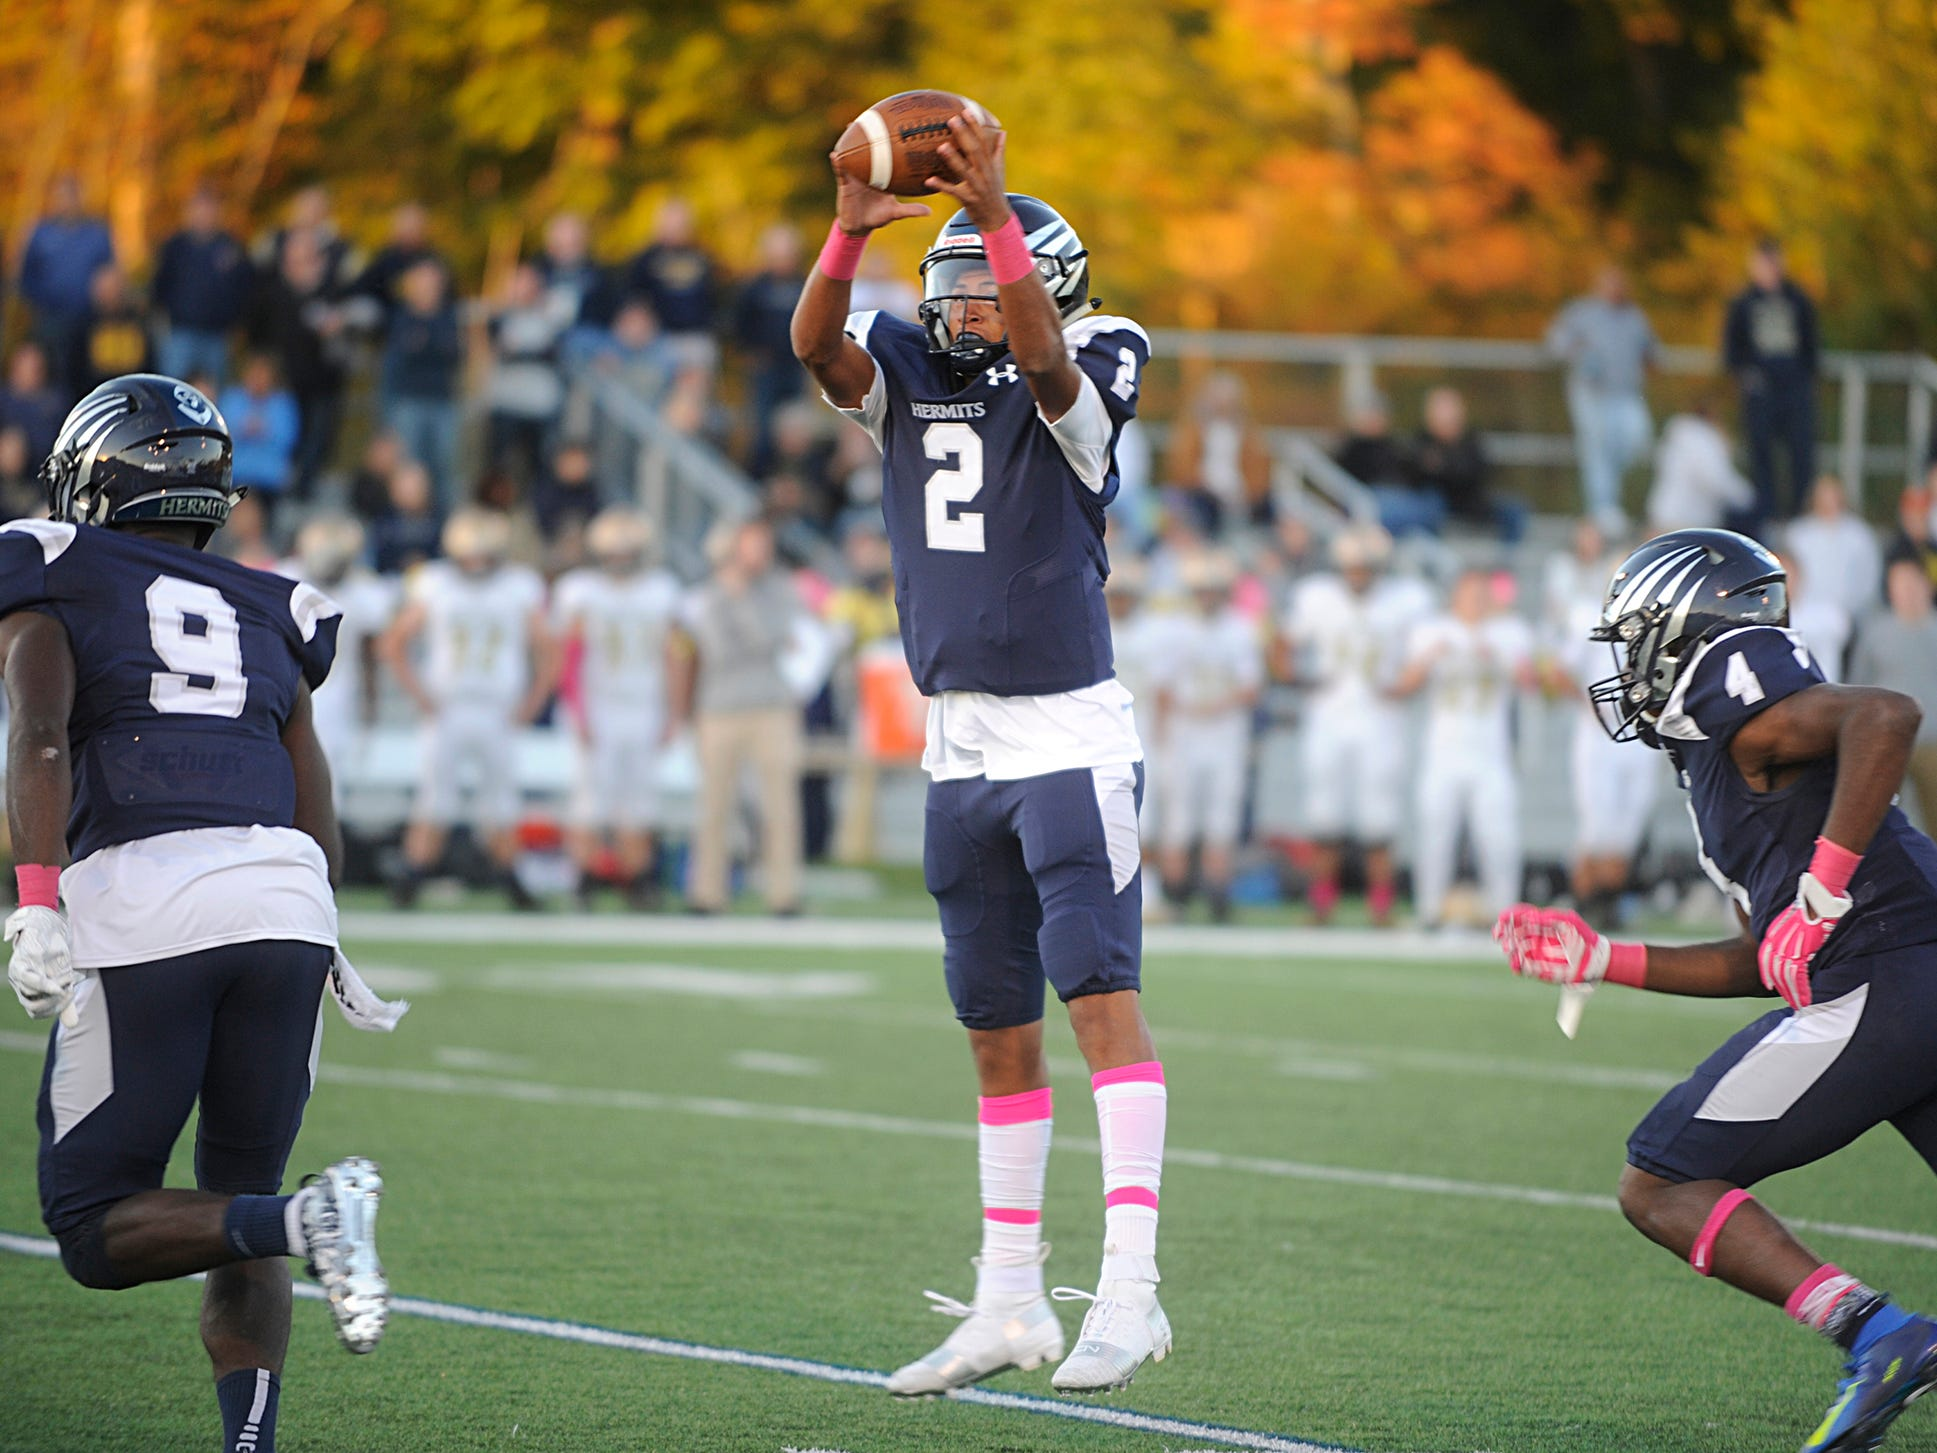 St. Augustine's QB, Chris Allen grabs a high snap during a game against Holy Spirit. The Hermits defeated the visiting Spartans, 27-14 on Friday, October 12, 2018.